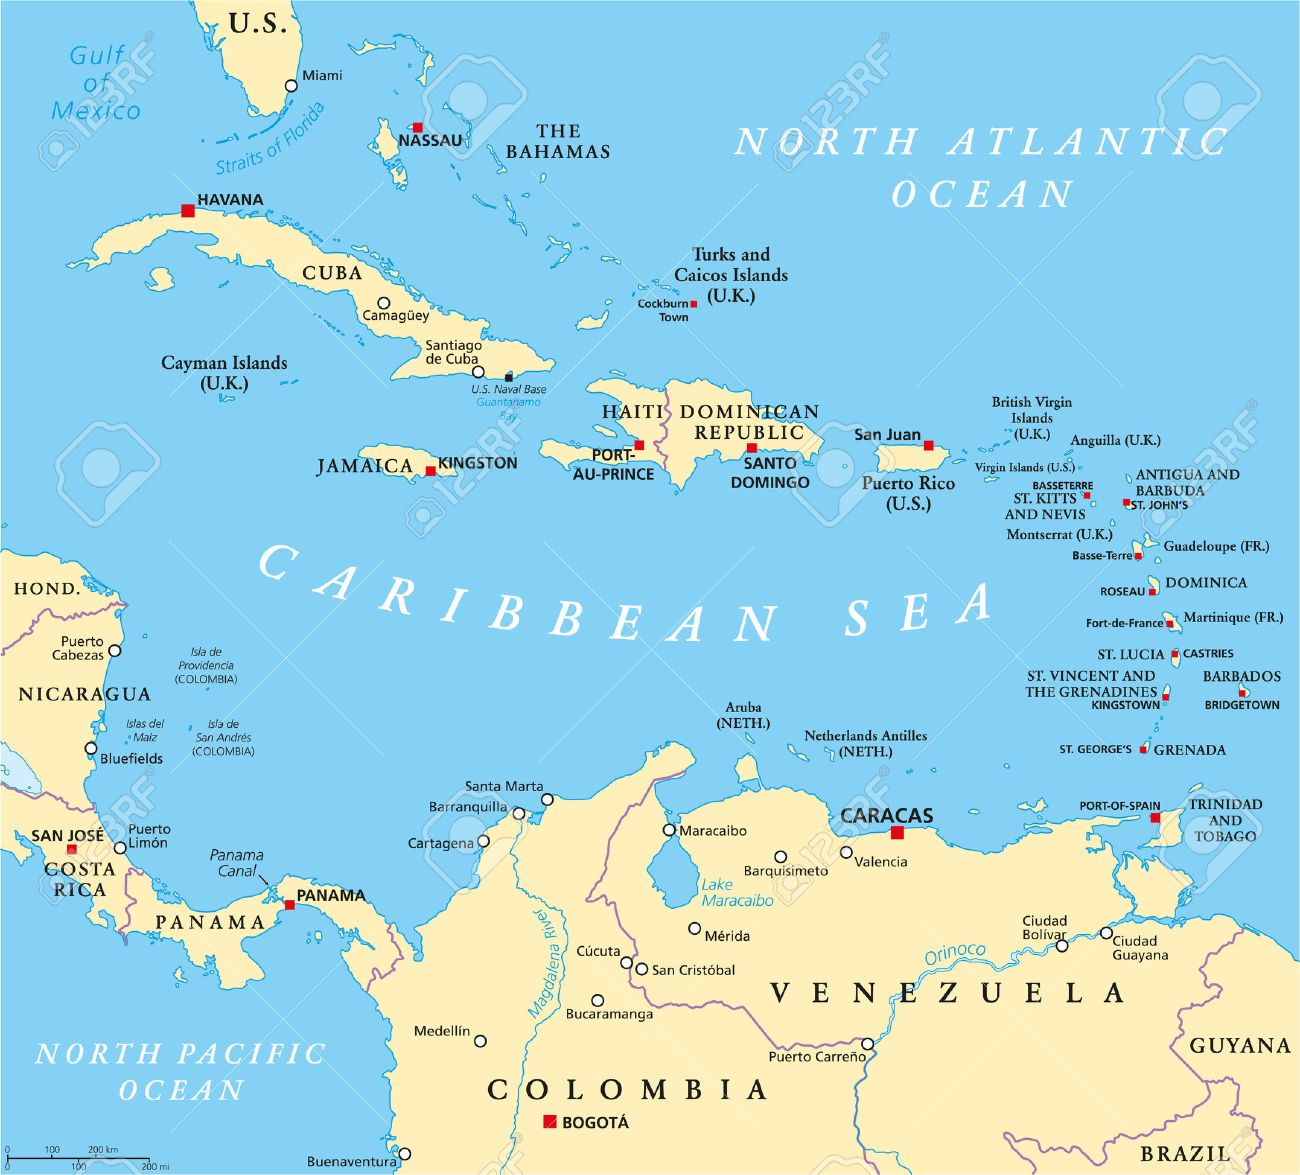 Caribbean Political Map With Capitals National Borders Important - Map of carribean